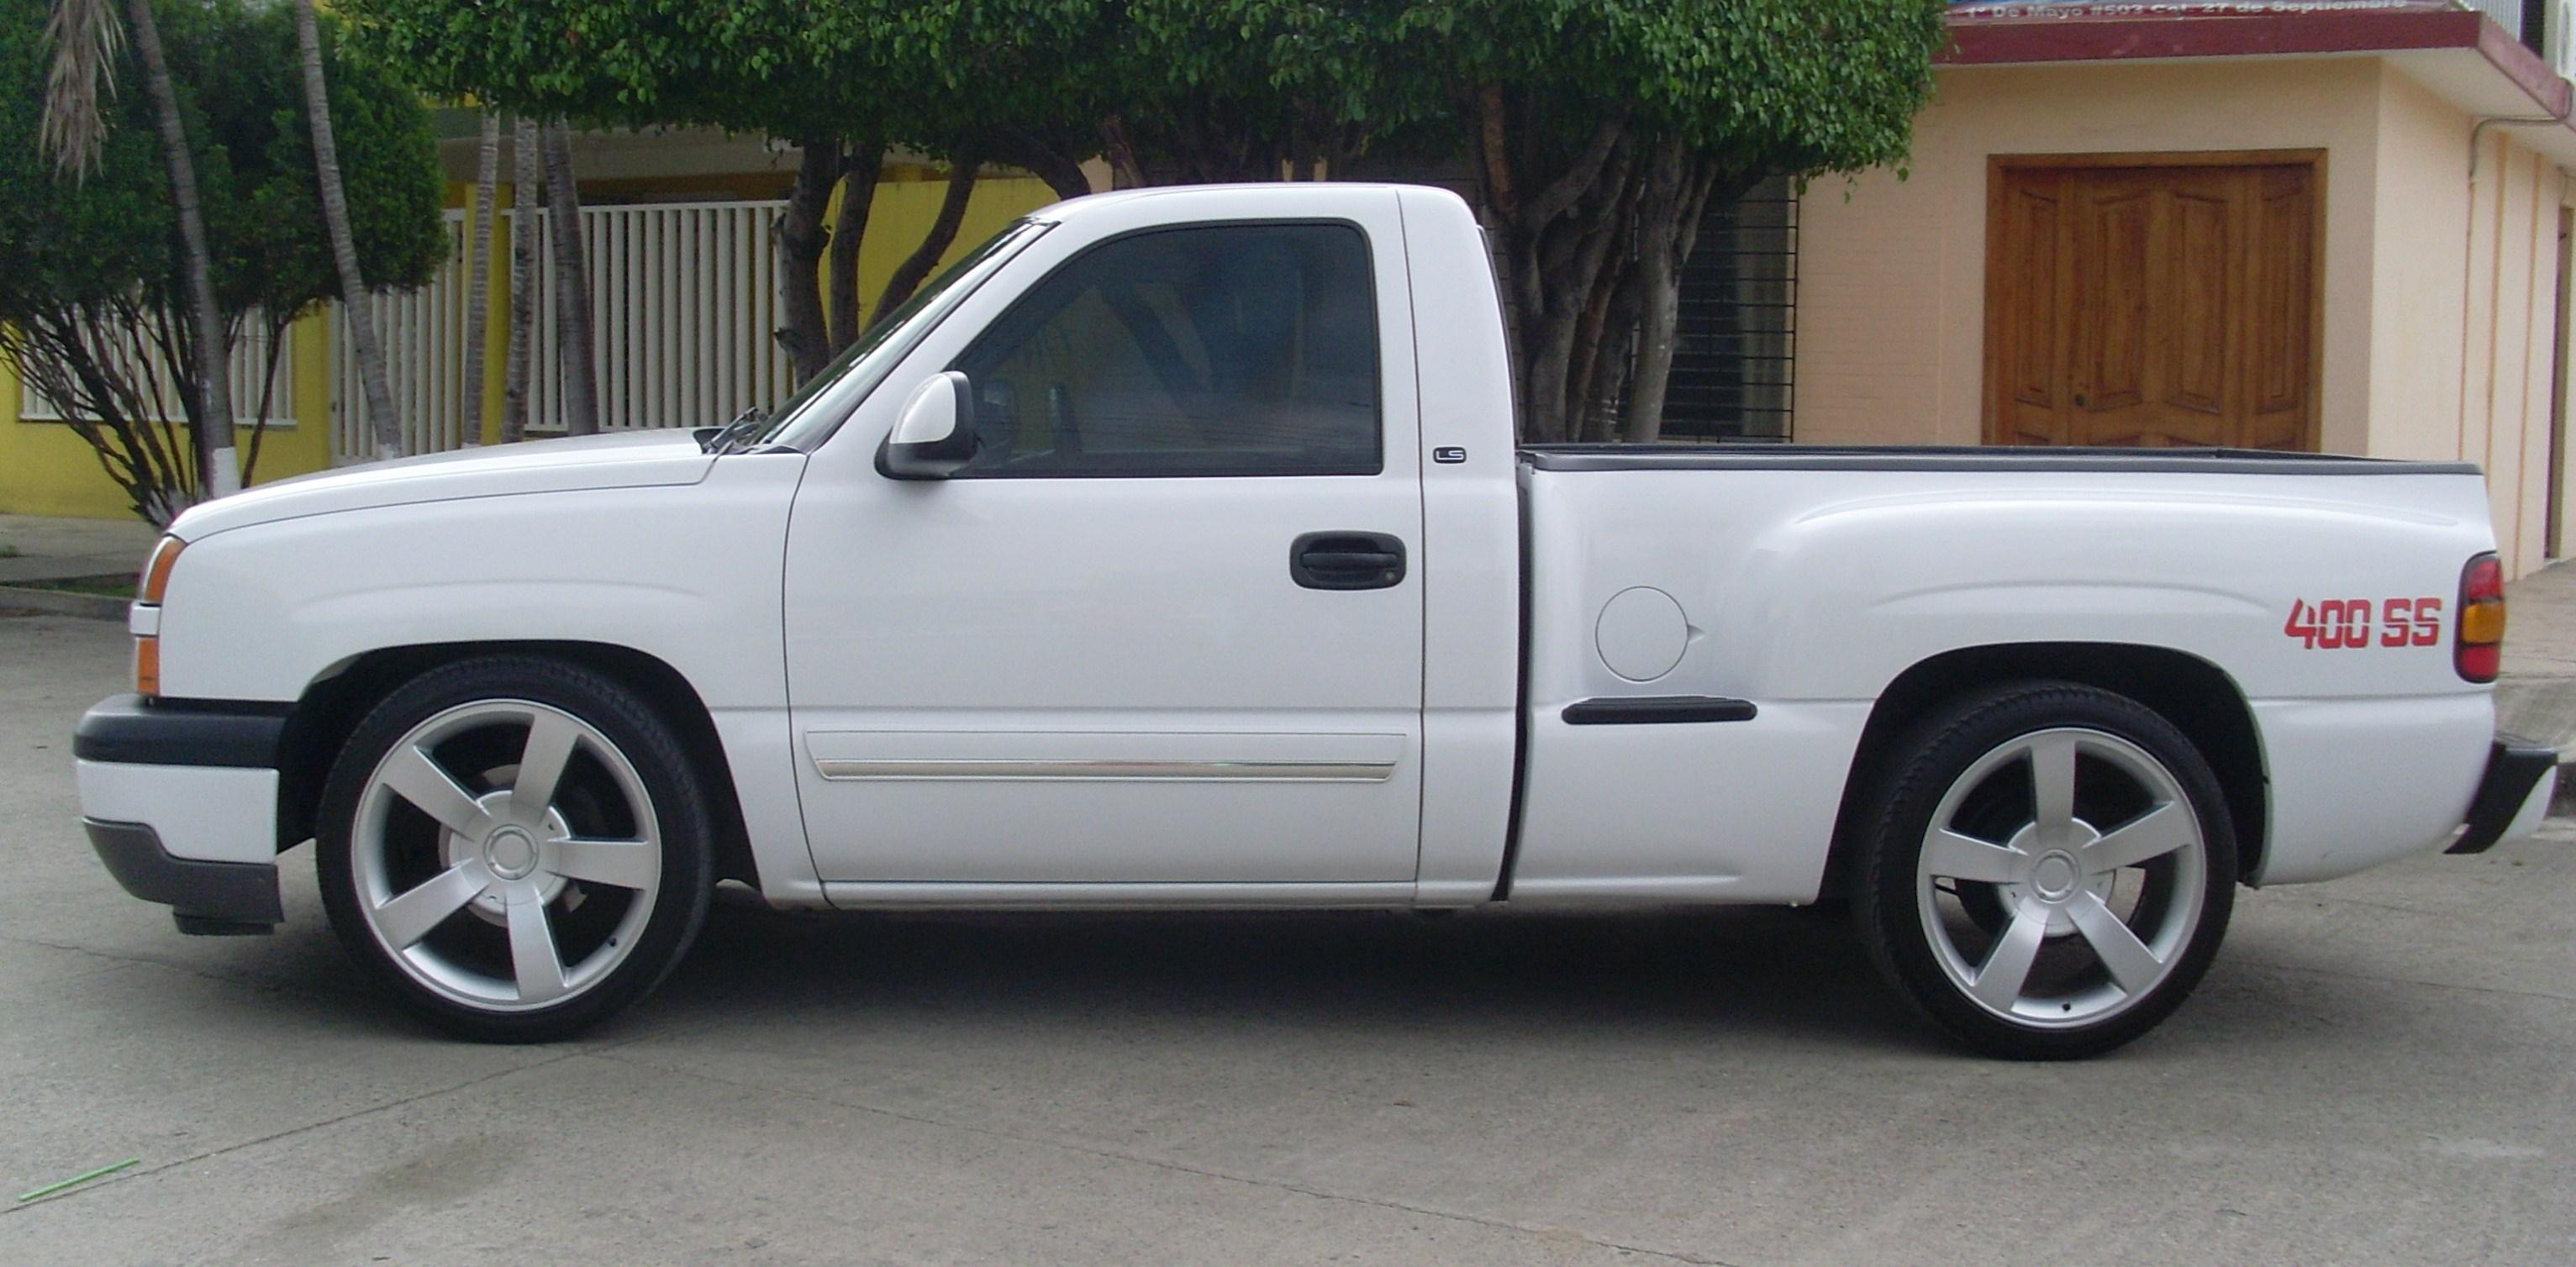 400ssgarces 2005 chevrolet silverado 1500 regular cab. Black Bedroom Furniture Sets. Home Design Ideas